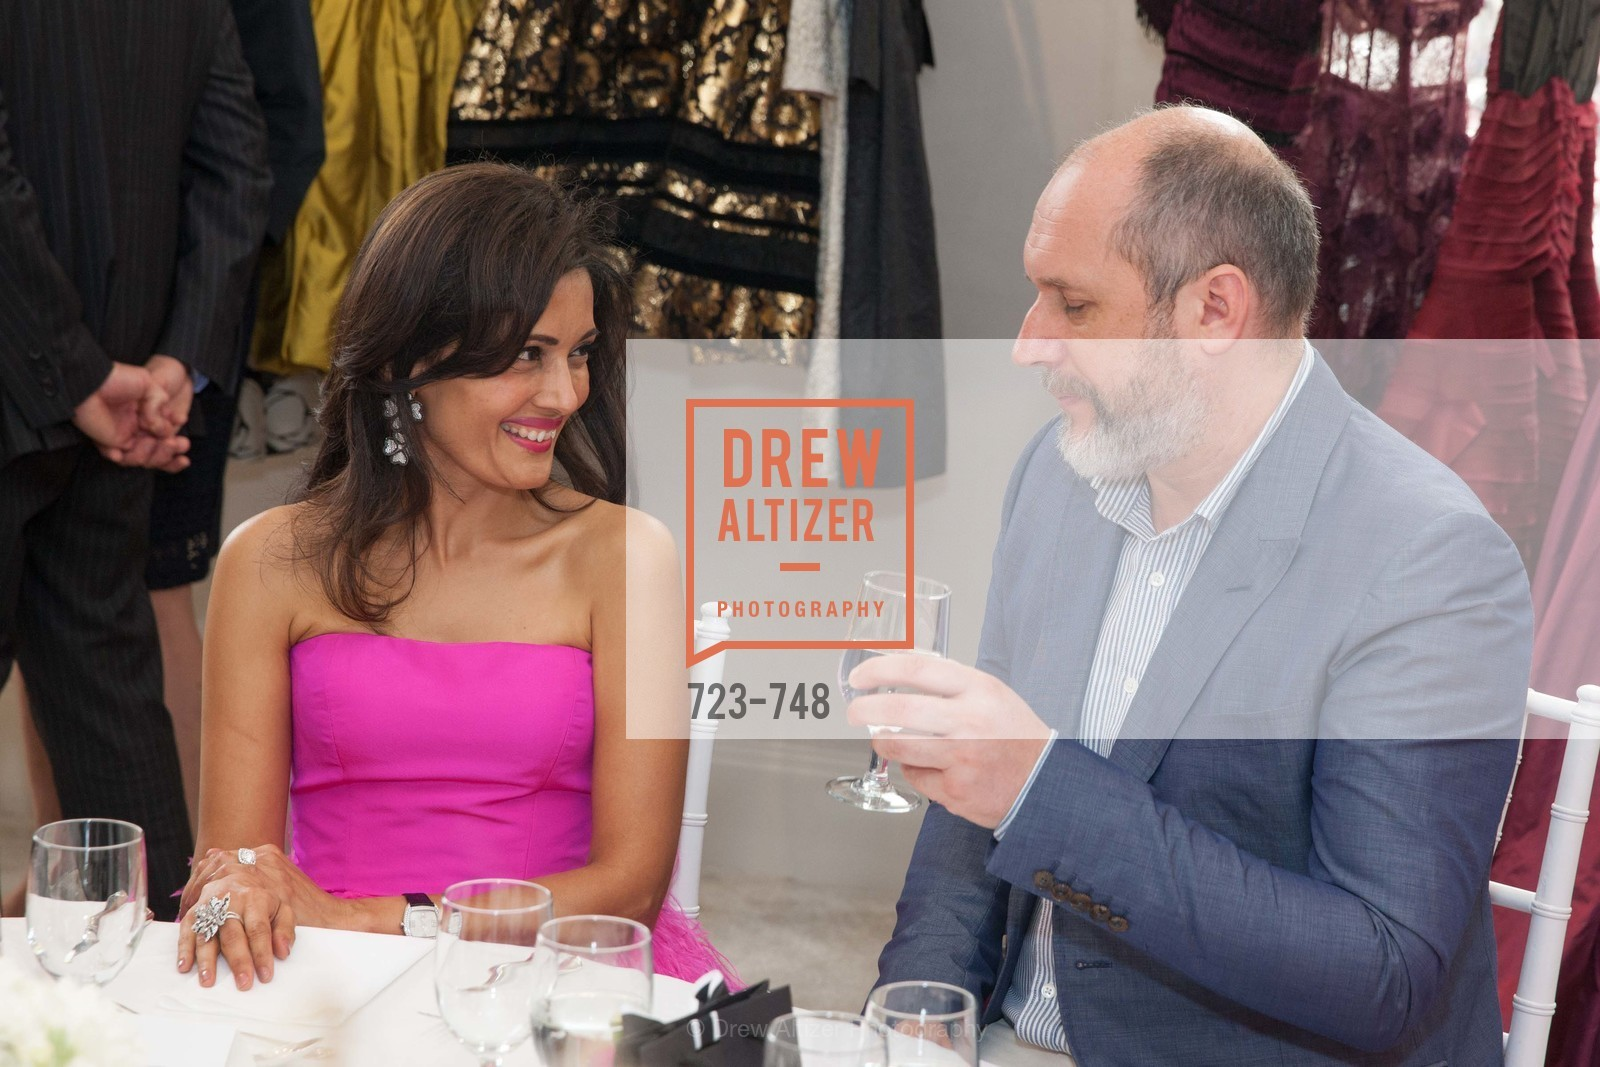 Komal Shah, Peter Copping, PETER COPPING'S Personal Appearance at SAKS FIFTH AVENUE, US, May 22nd, 2015,Drew Altizer, Drew Altizer Photography, full-service agency, private events, San Francisco photographer, photographer california